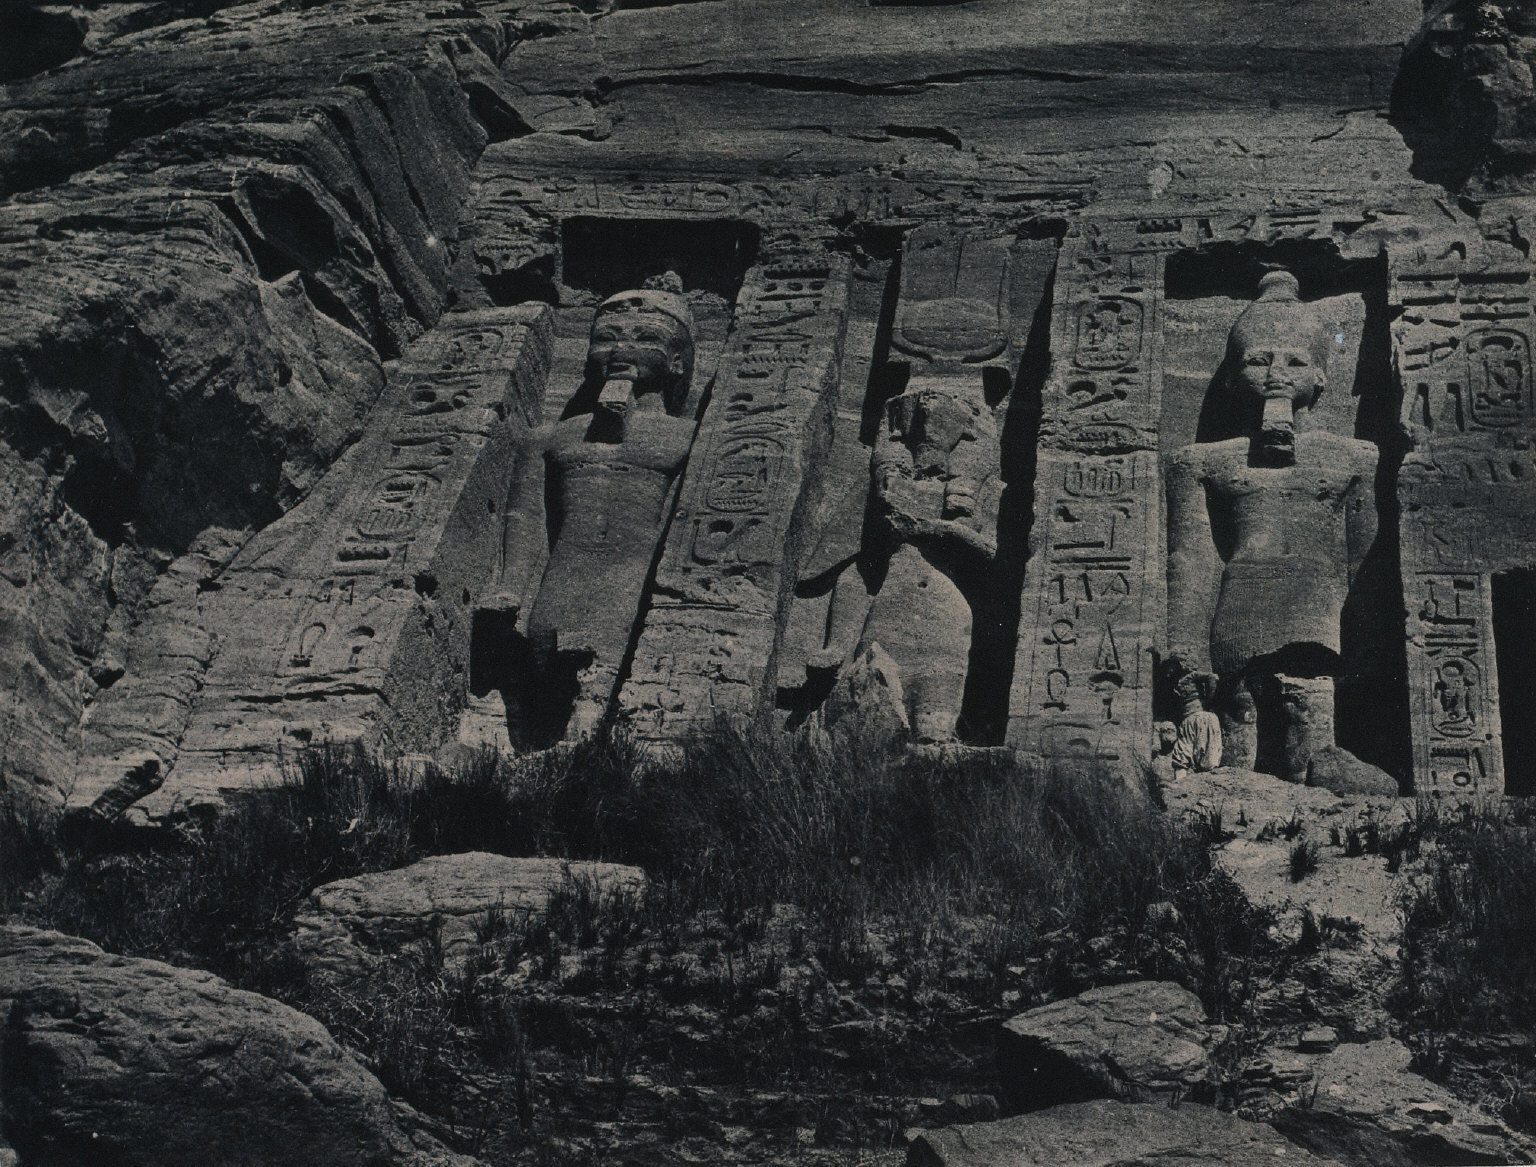 Southern Portion of the Rock-cut Temple of Hathor, Abu Simbel